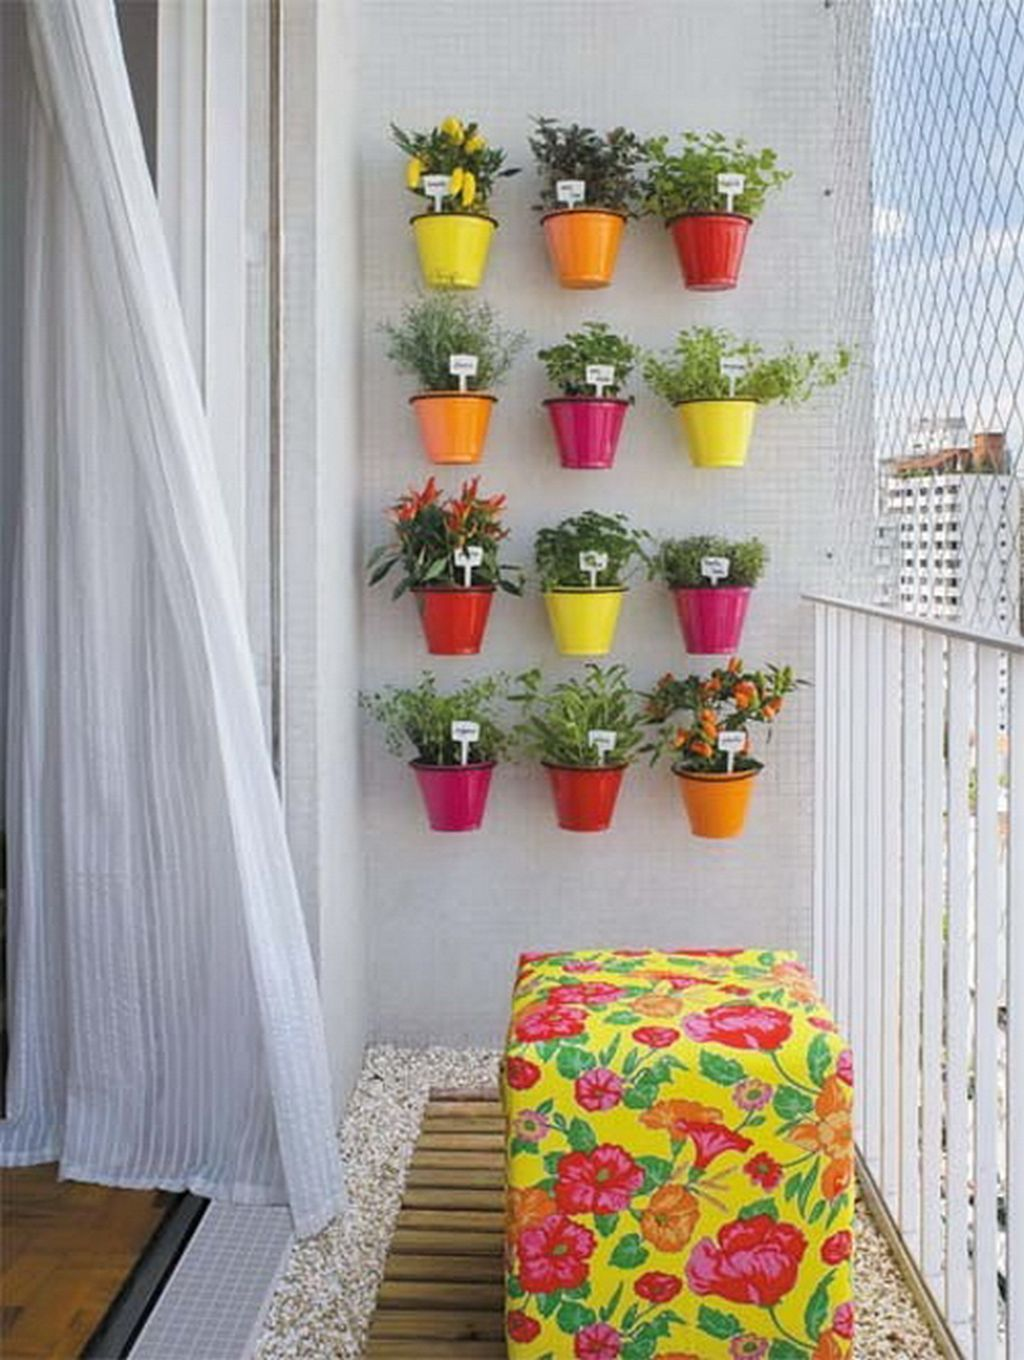 07-balcony-gardens-tiny-space-big-color-homebnc